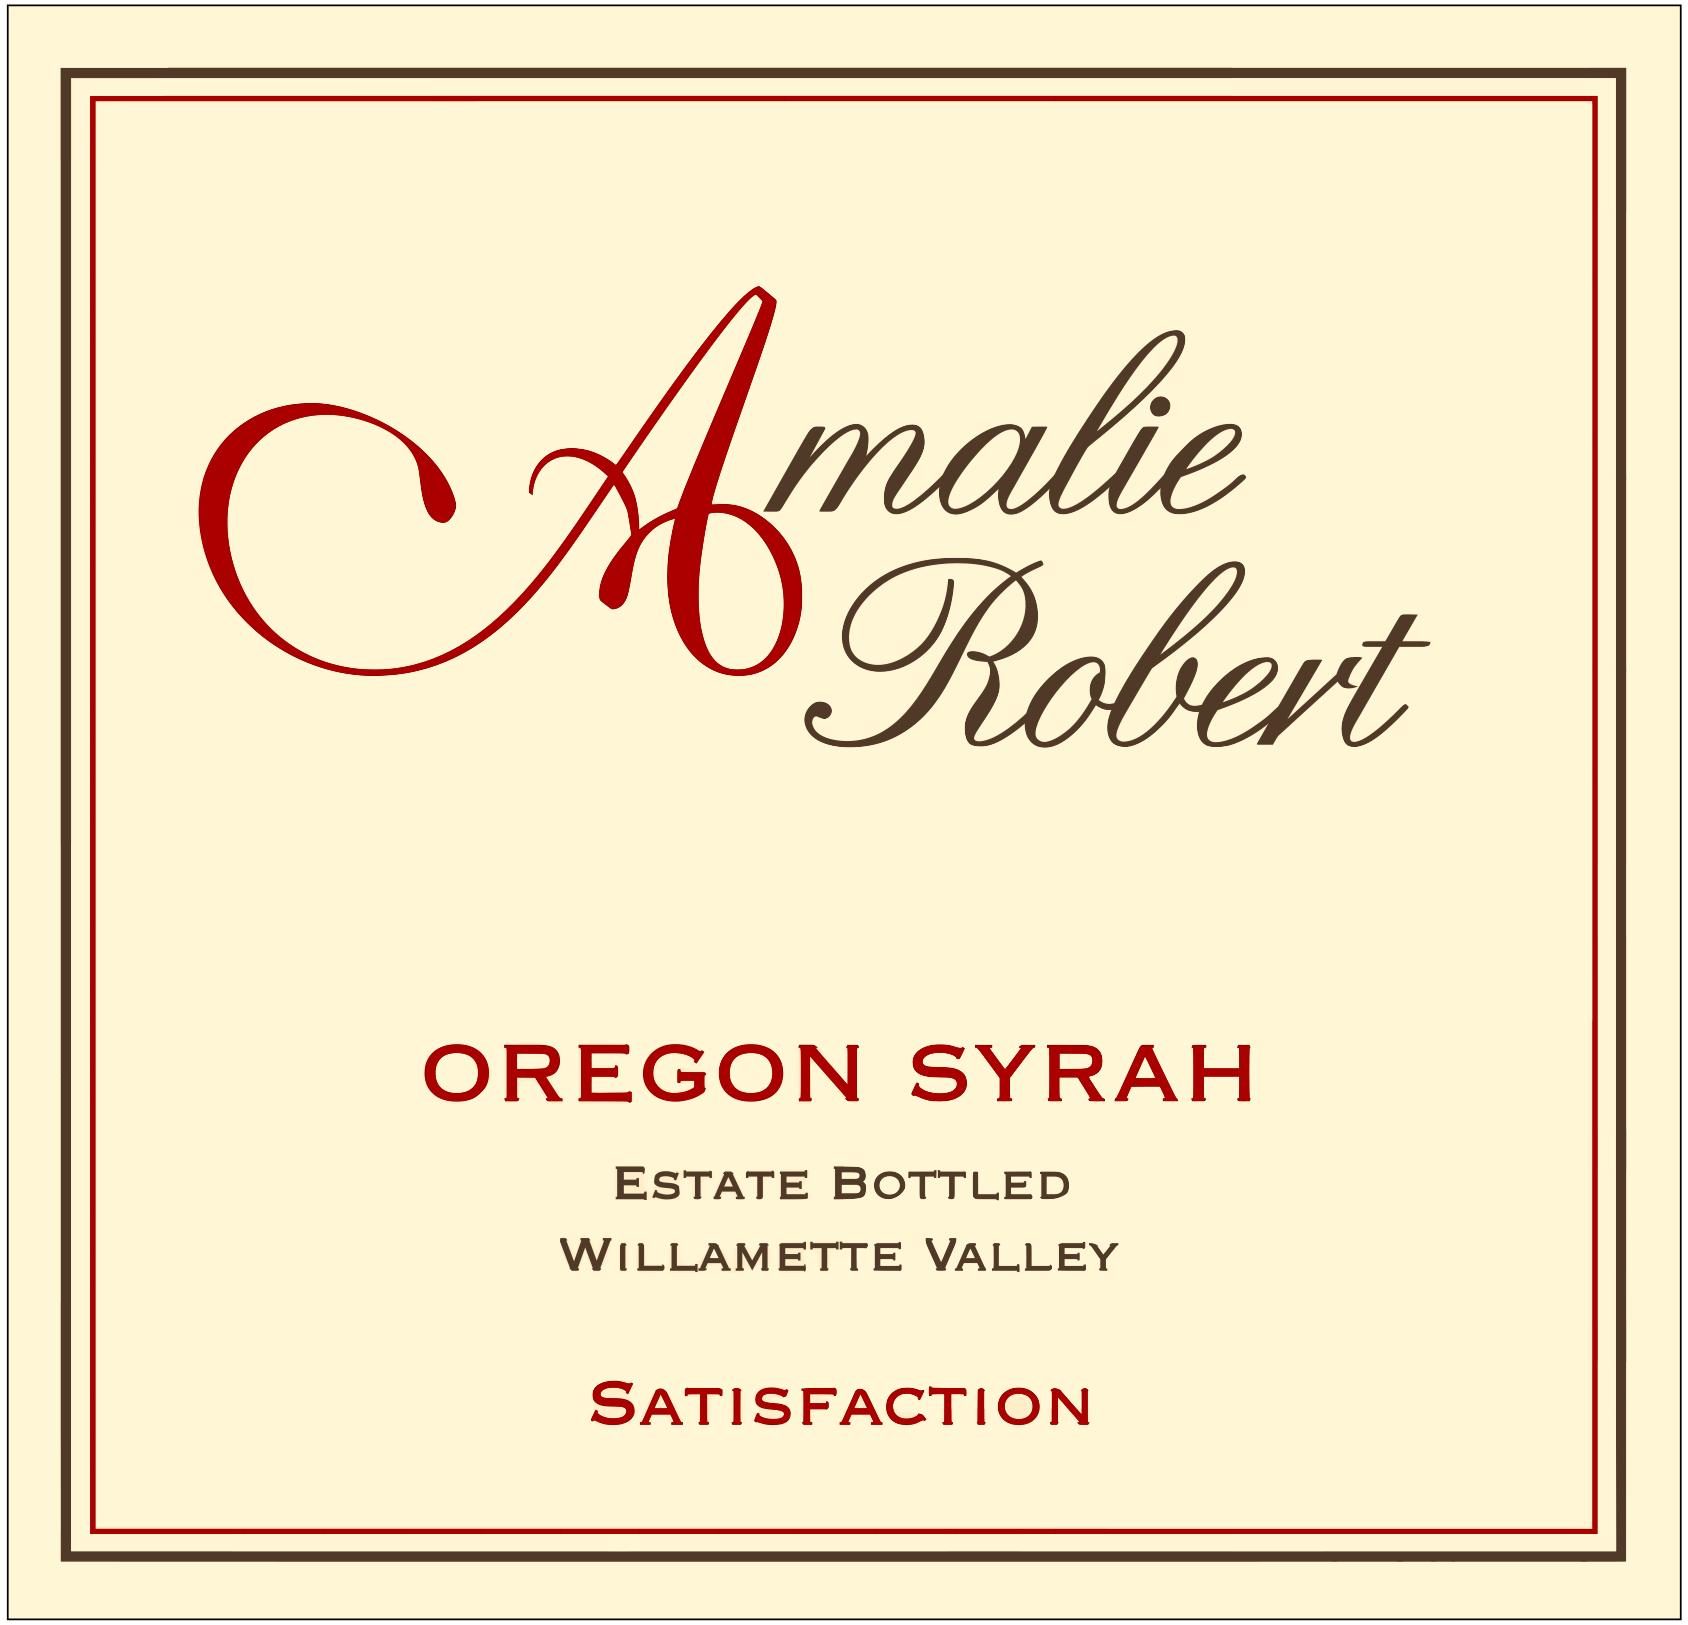 2014 Satisfaction Syrah - 93 pts Vinous MAIN